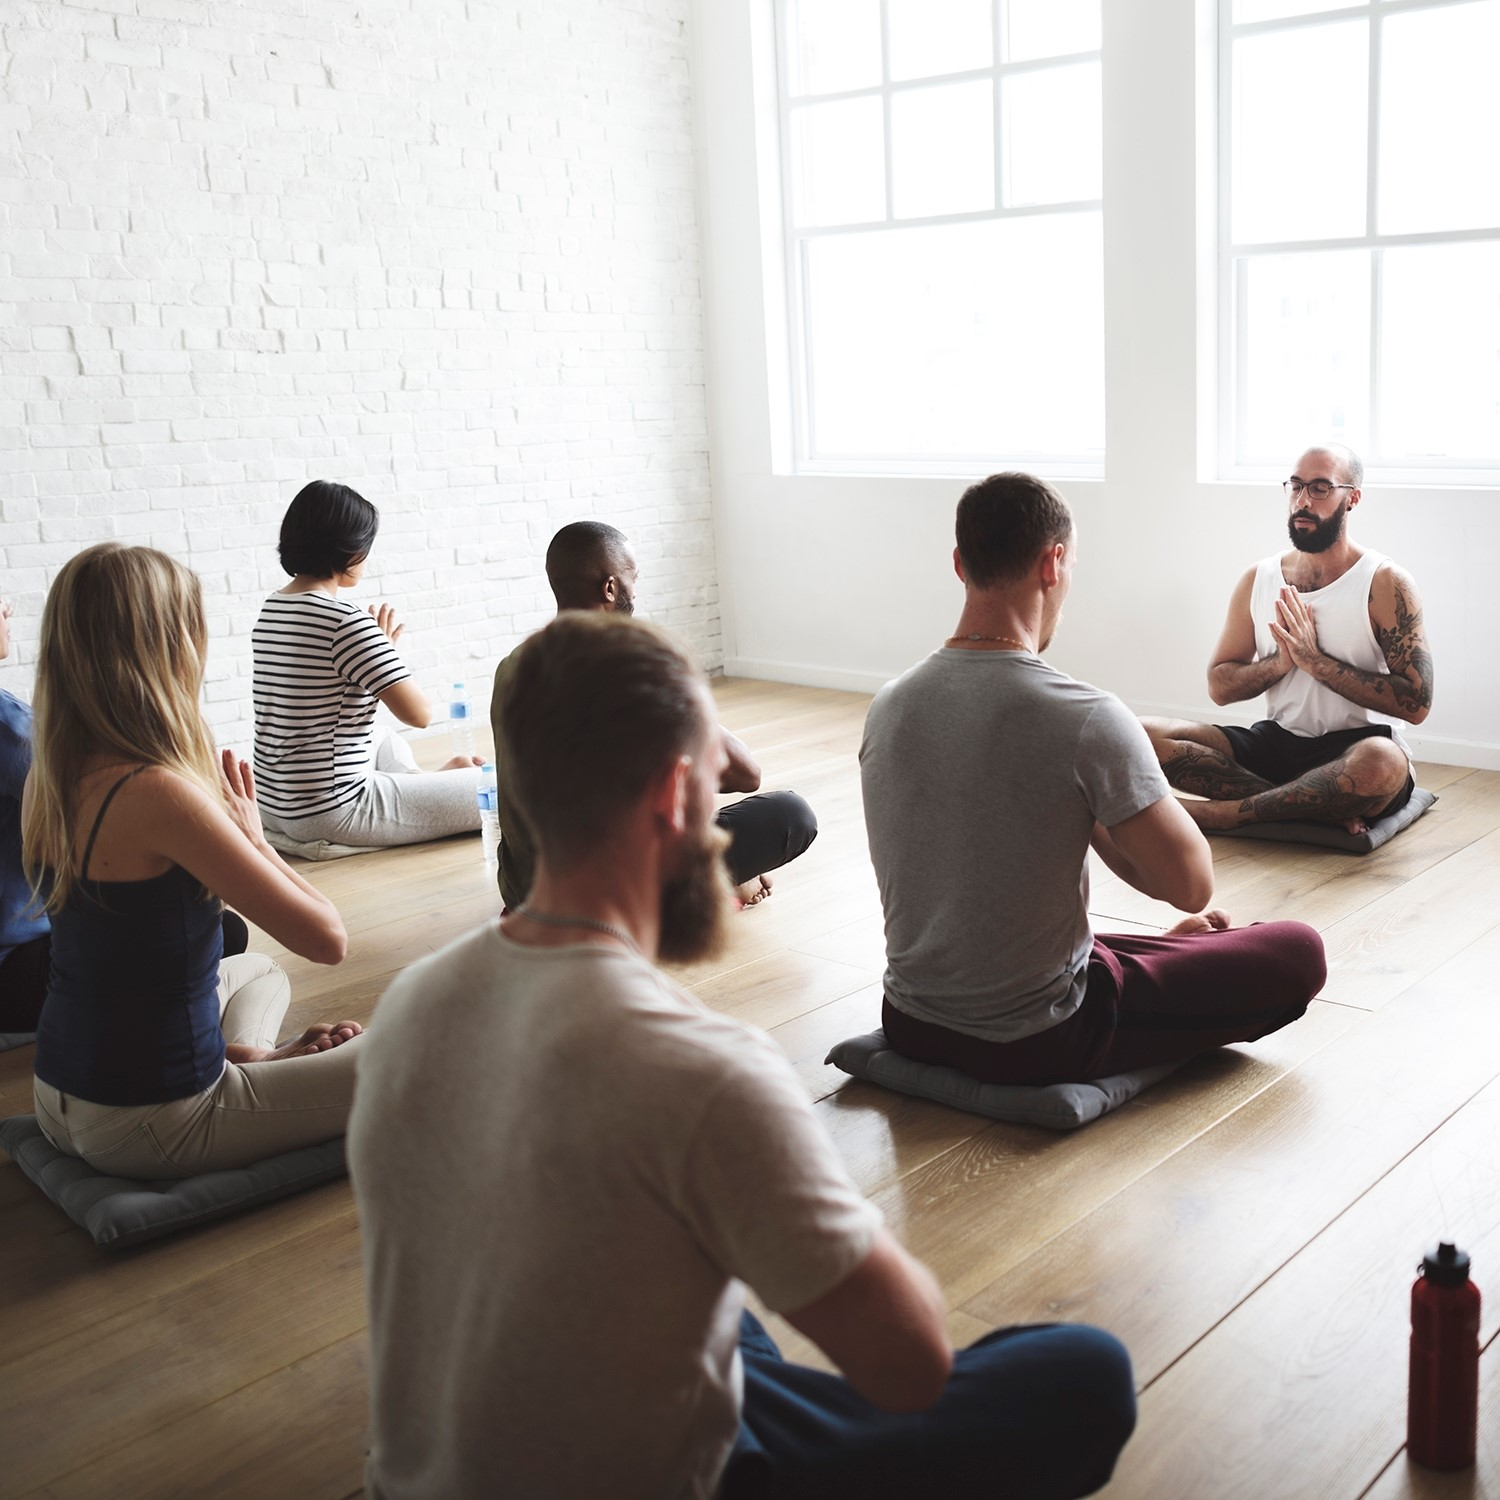 yoga class meditation_ThinkstockPhotos